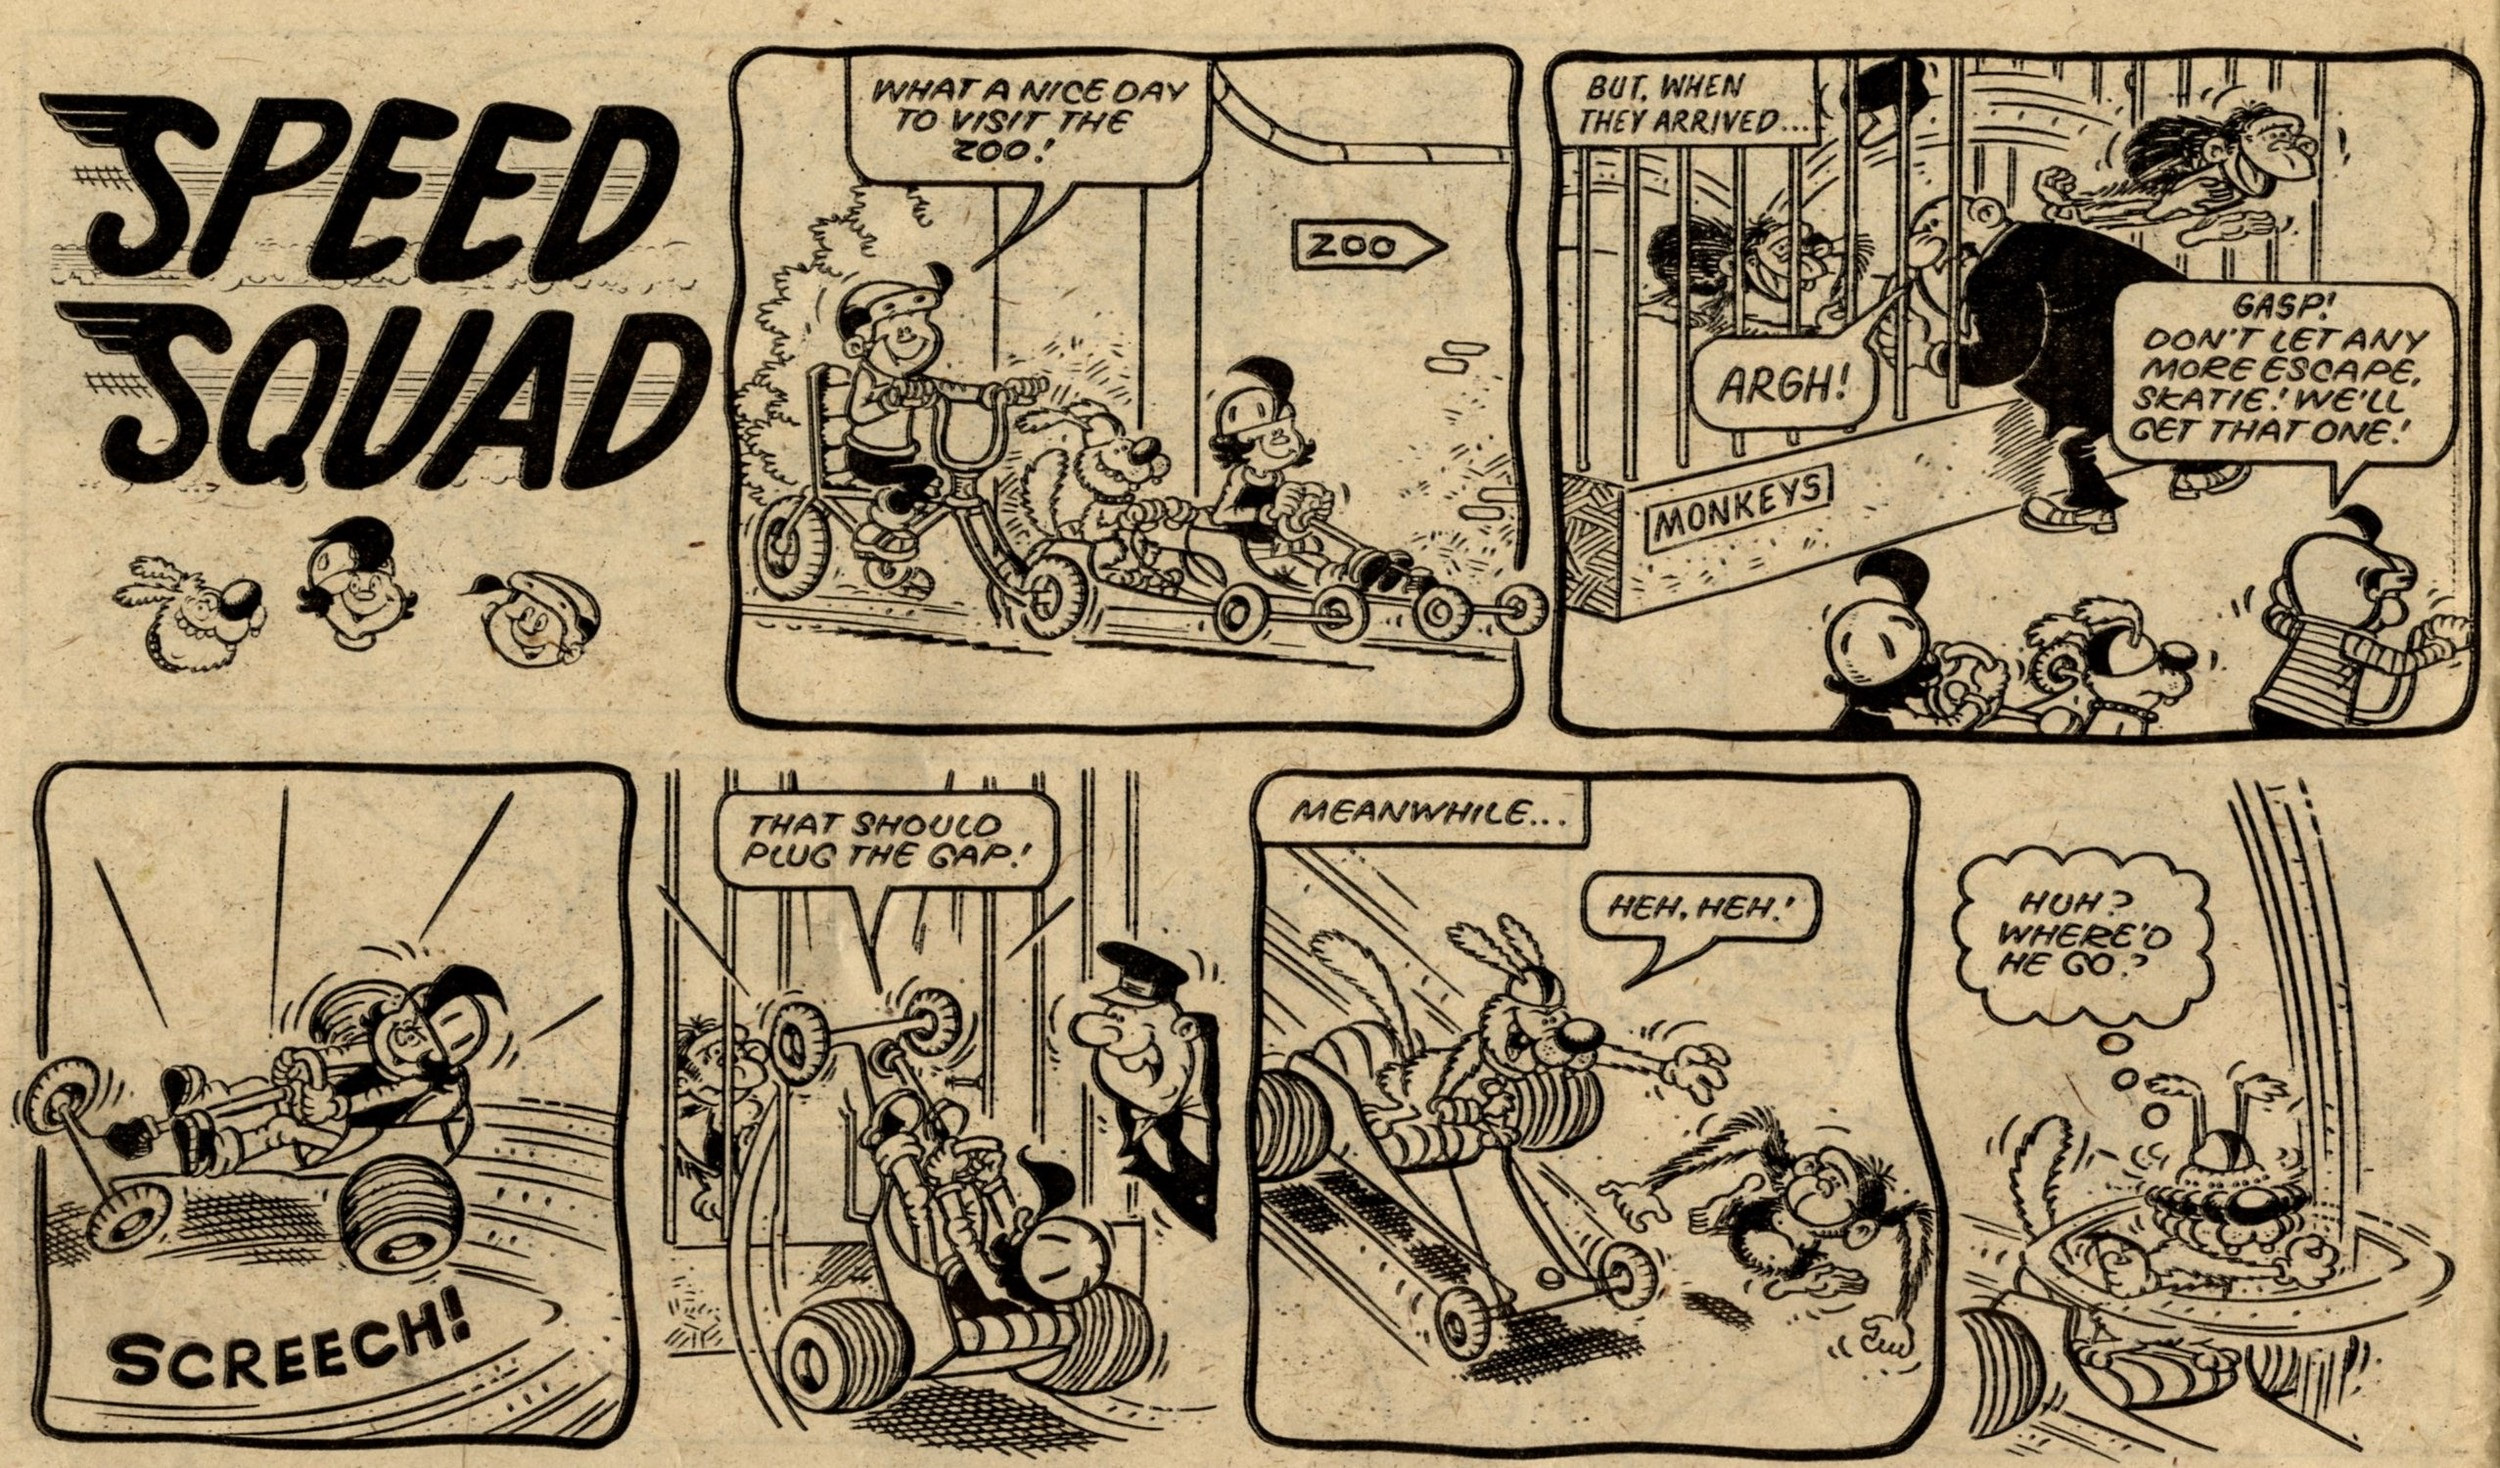 Speed Squad: Mike Lacey? Jimmy Hansen? (artist)